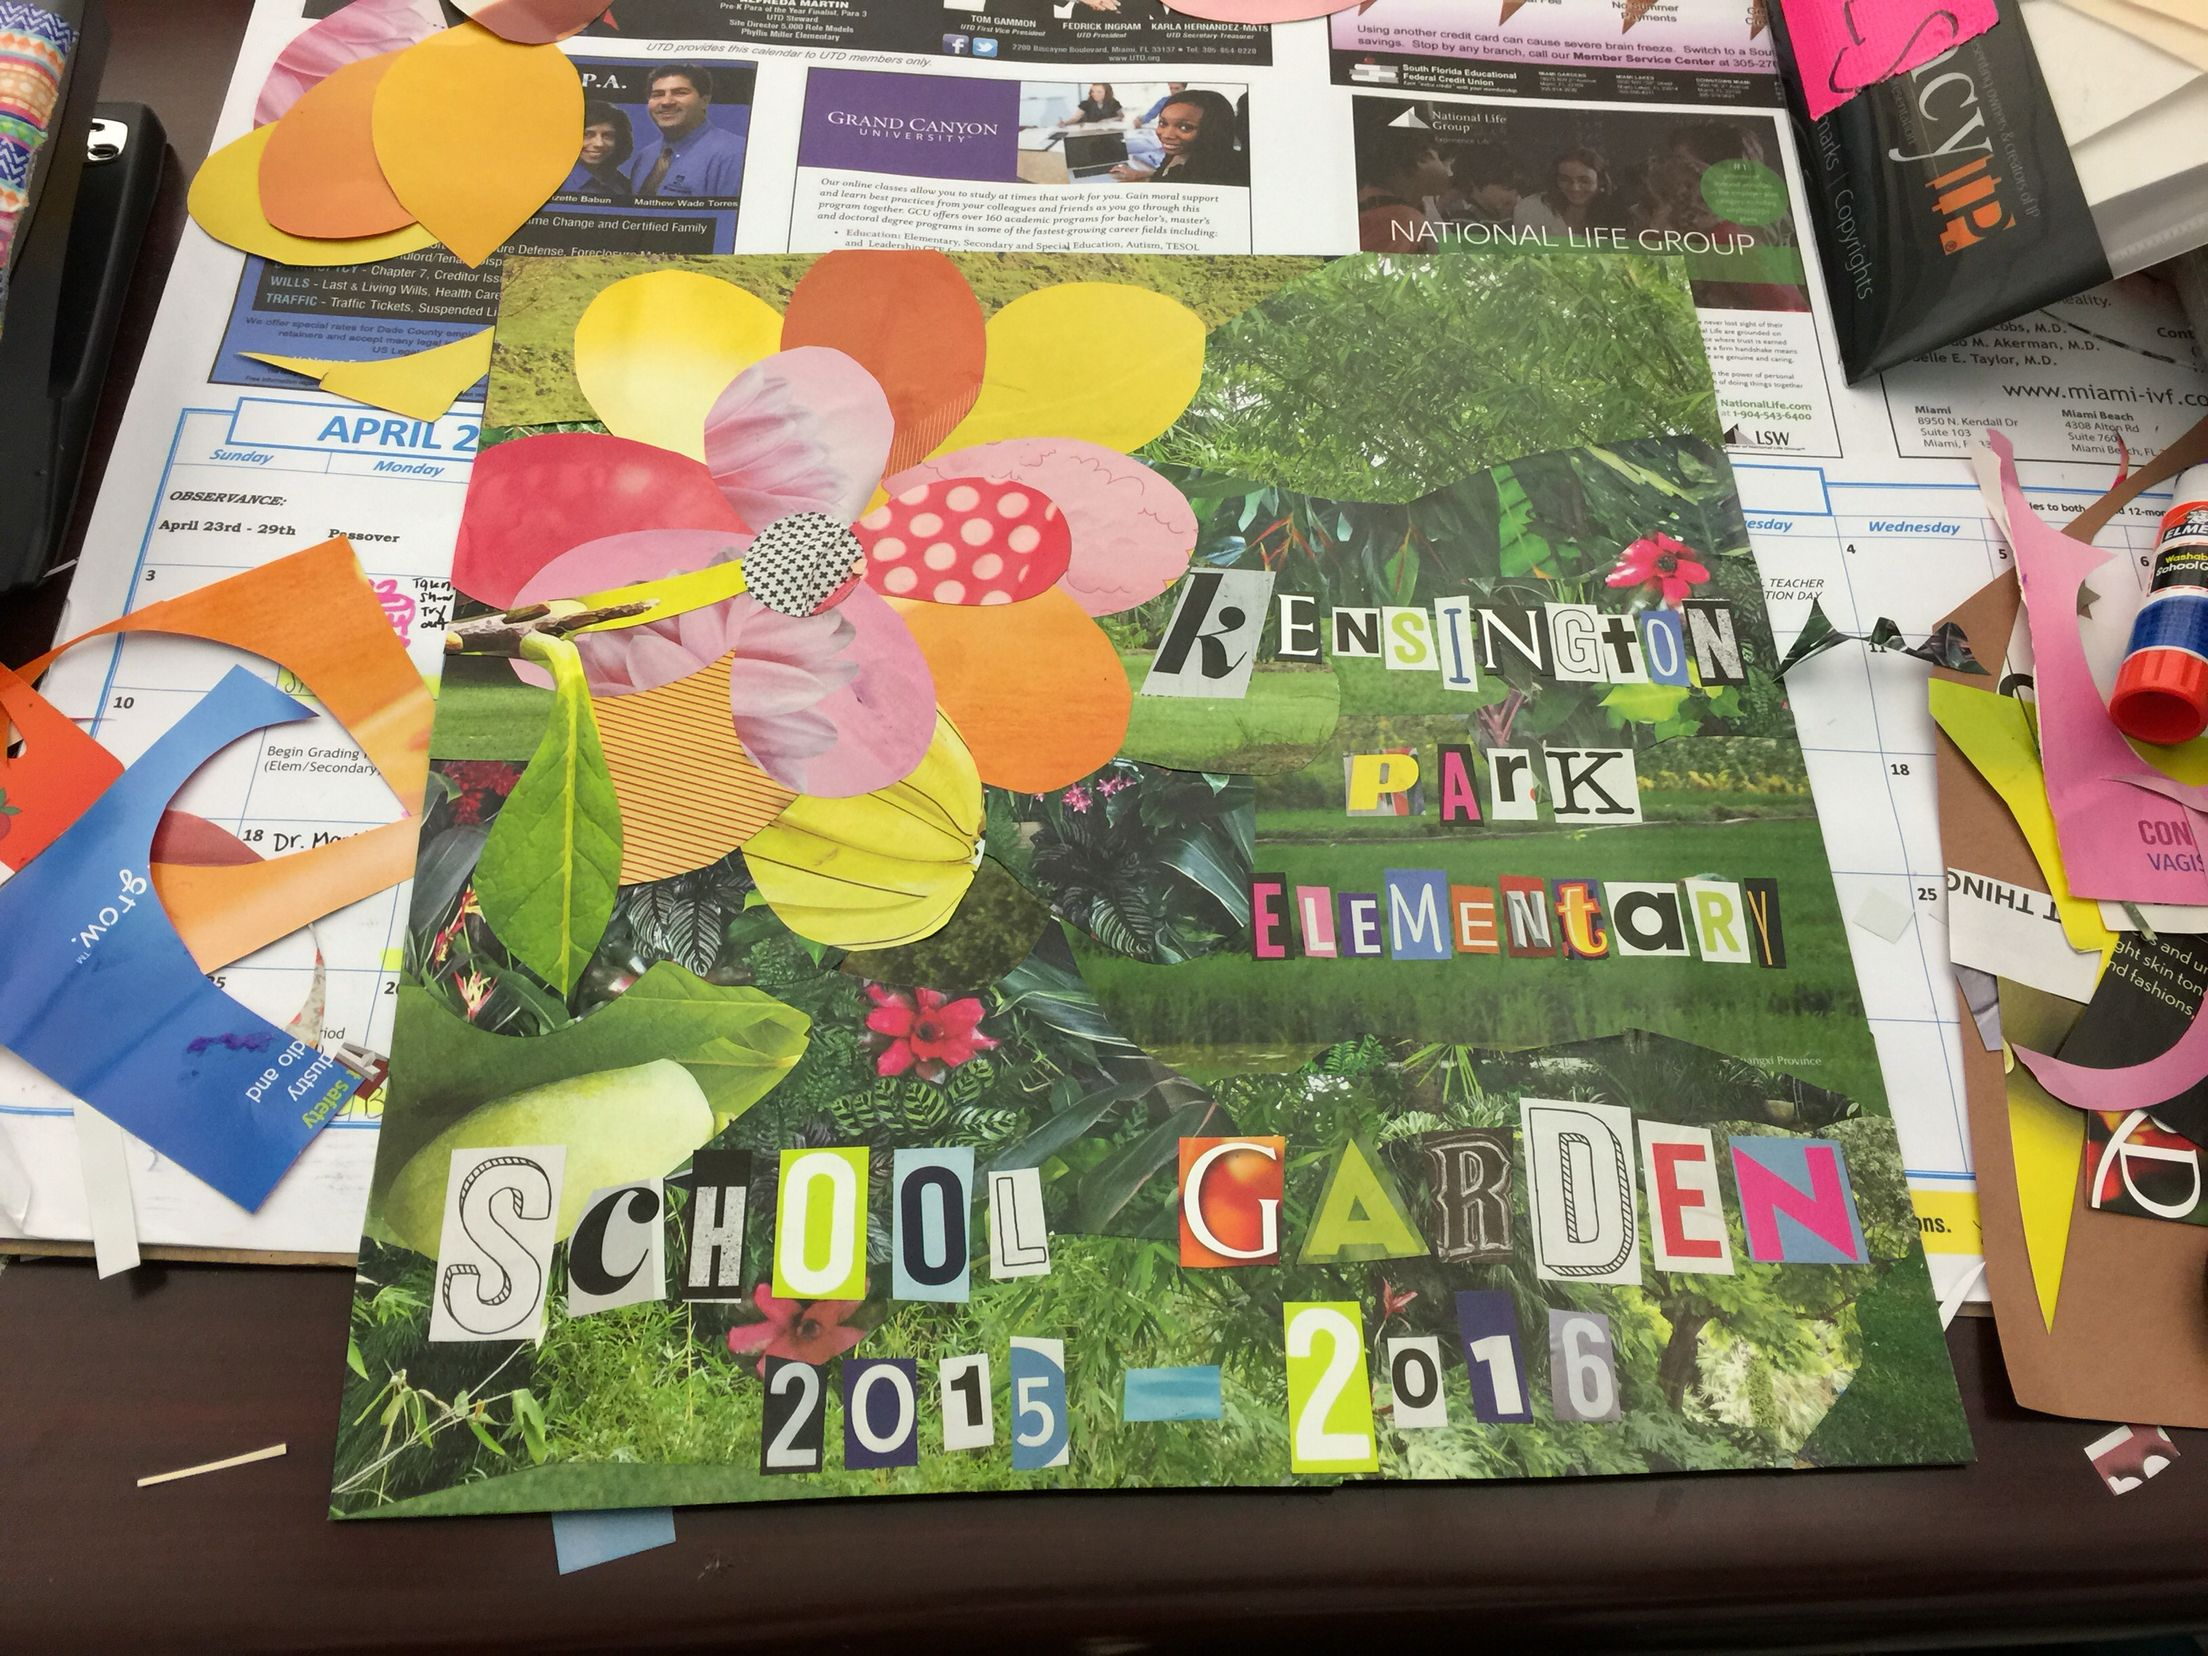 How to scrapbook magazines - Fairchild Challenge School Garden Scrapbook Cover Made With Magazine Collage